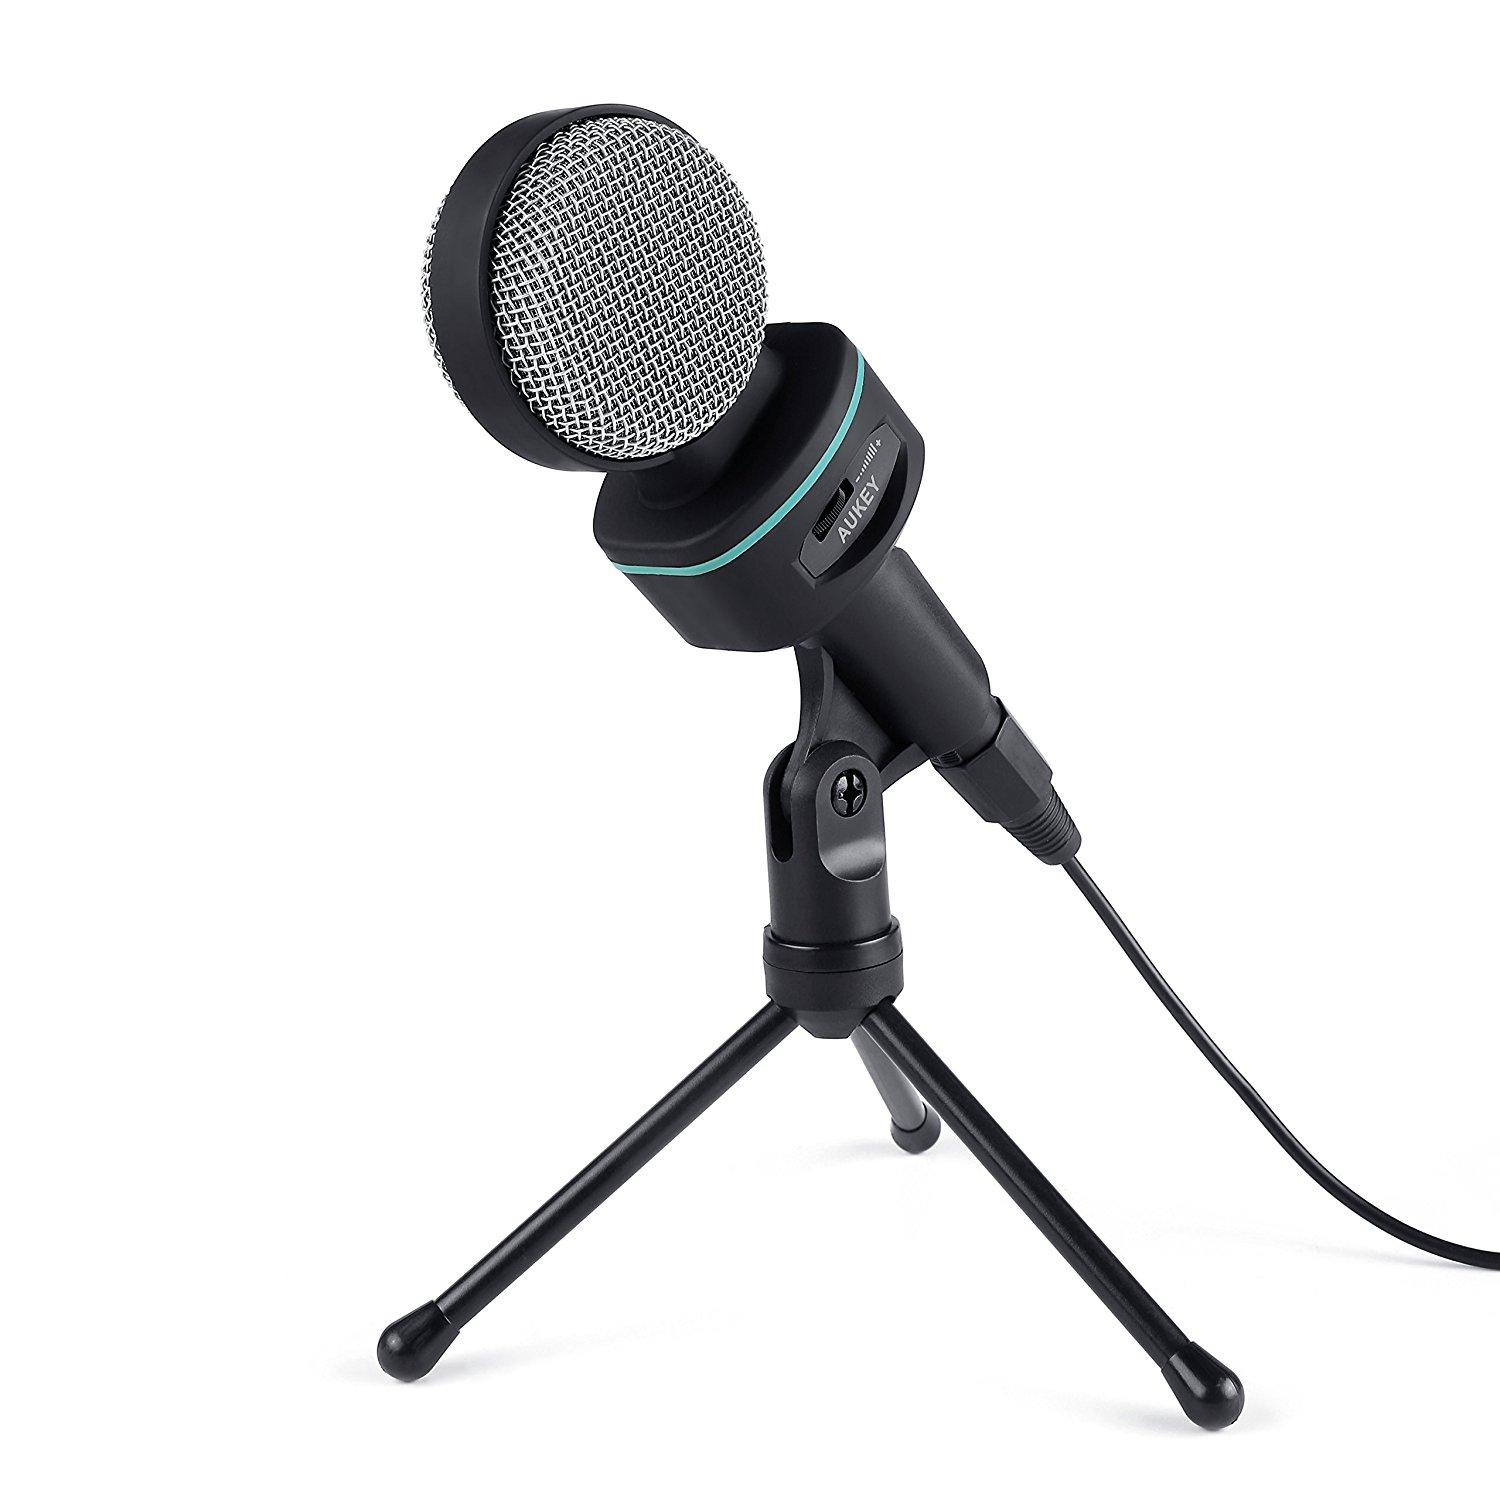 Aukey Condenser Microphone with Stand